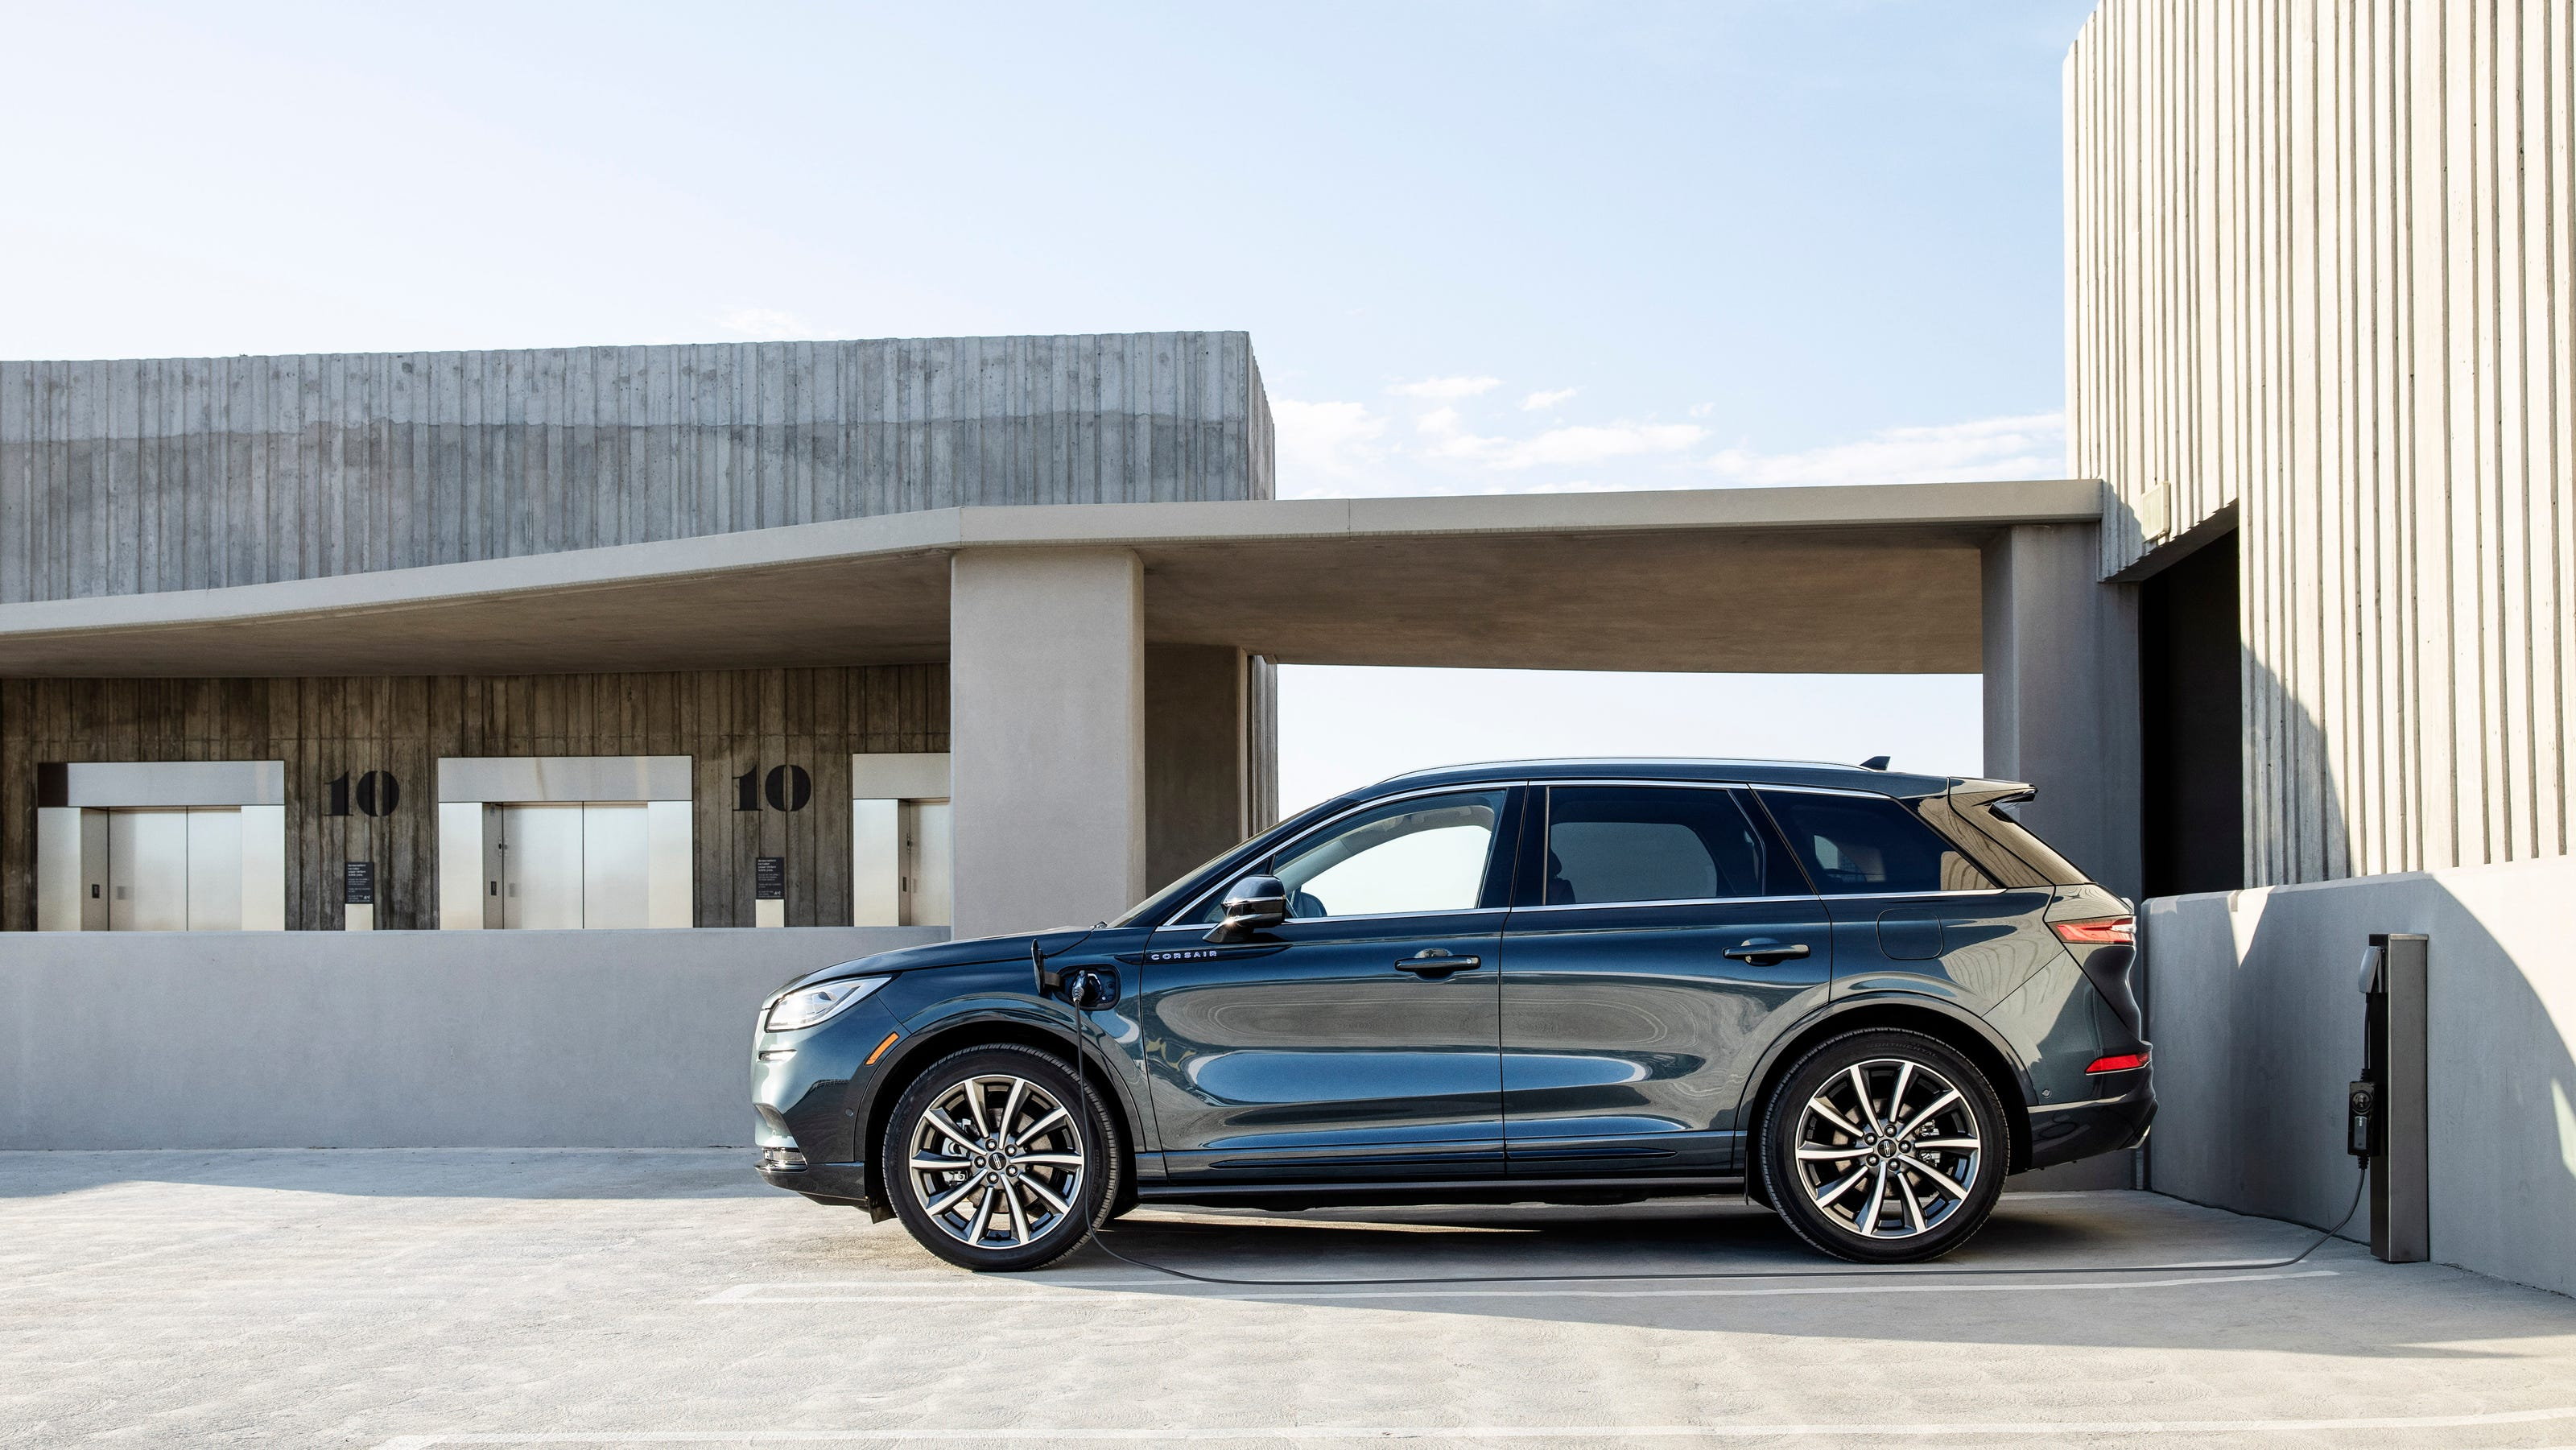 2021 Lincoln Corsair Hybrid Suv Offers More Power And Technology